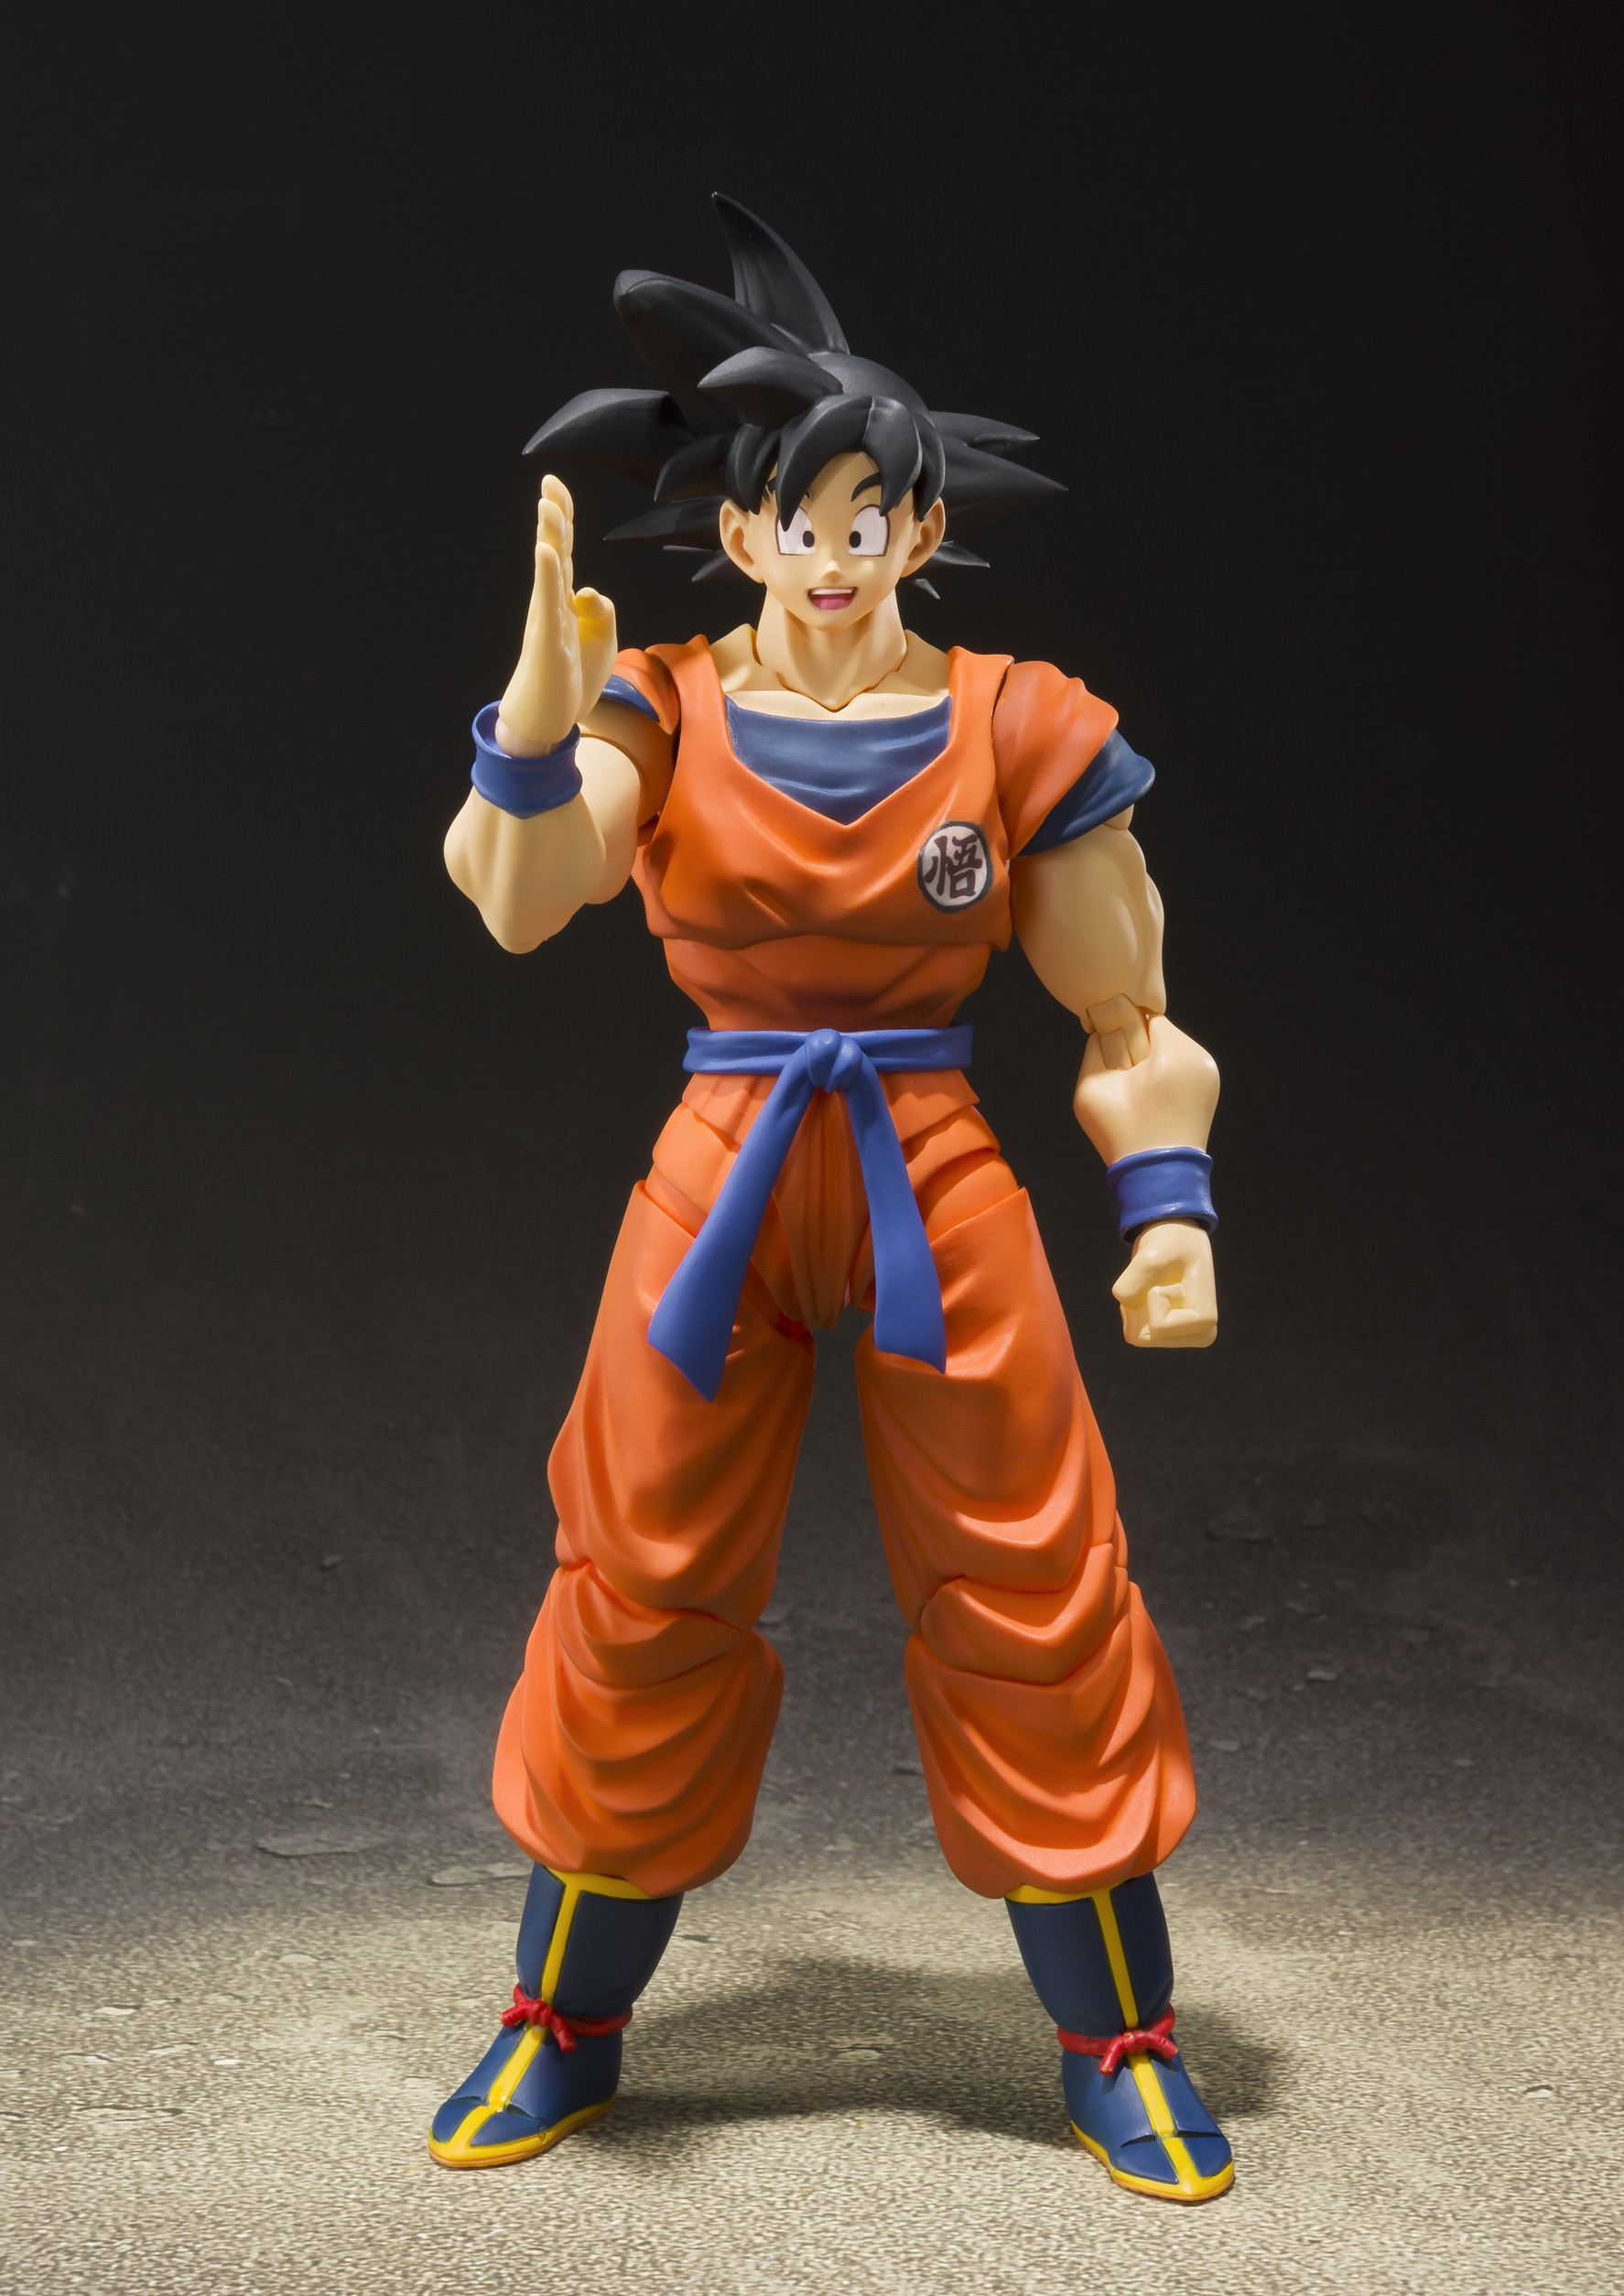 Son Goku Dragon Ball Z SH Figuarts Figure 4549660208778